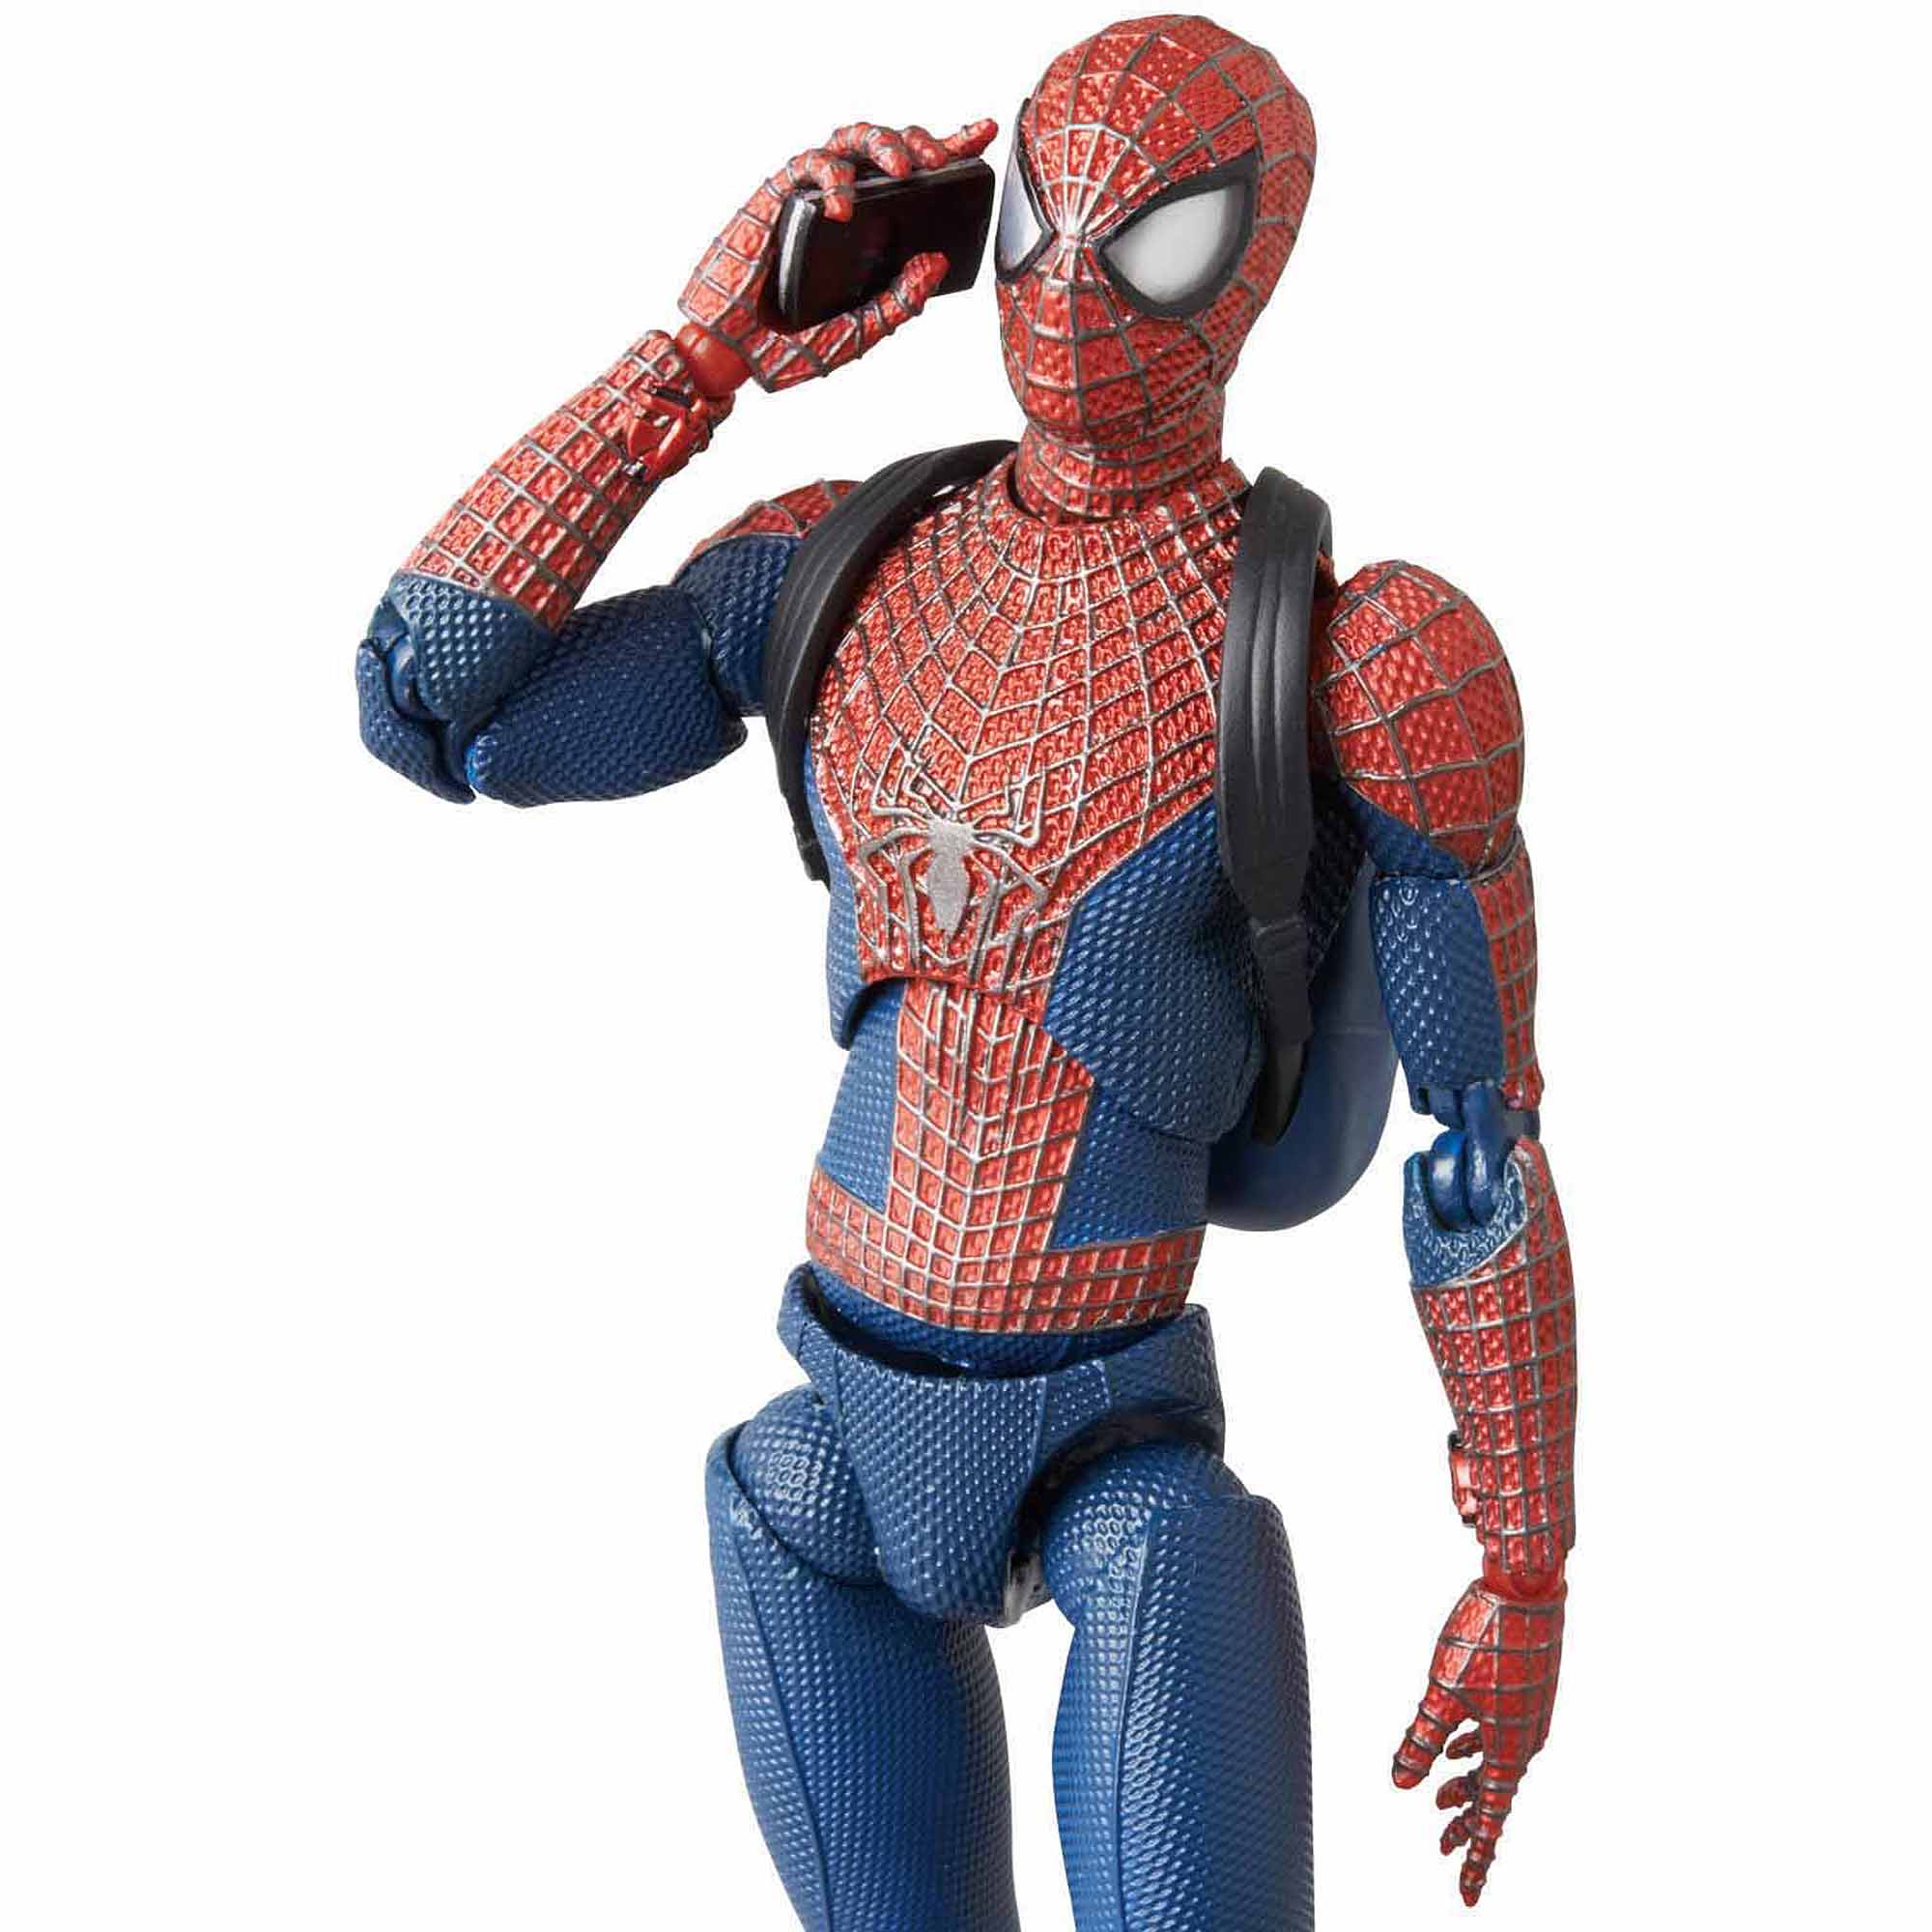 Medicom Toy Amazing Spider-Man 2 Spider-Man Maf-Ex Action Figure Dx Set by Medicom Toy